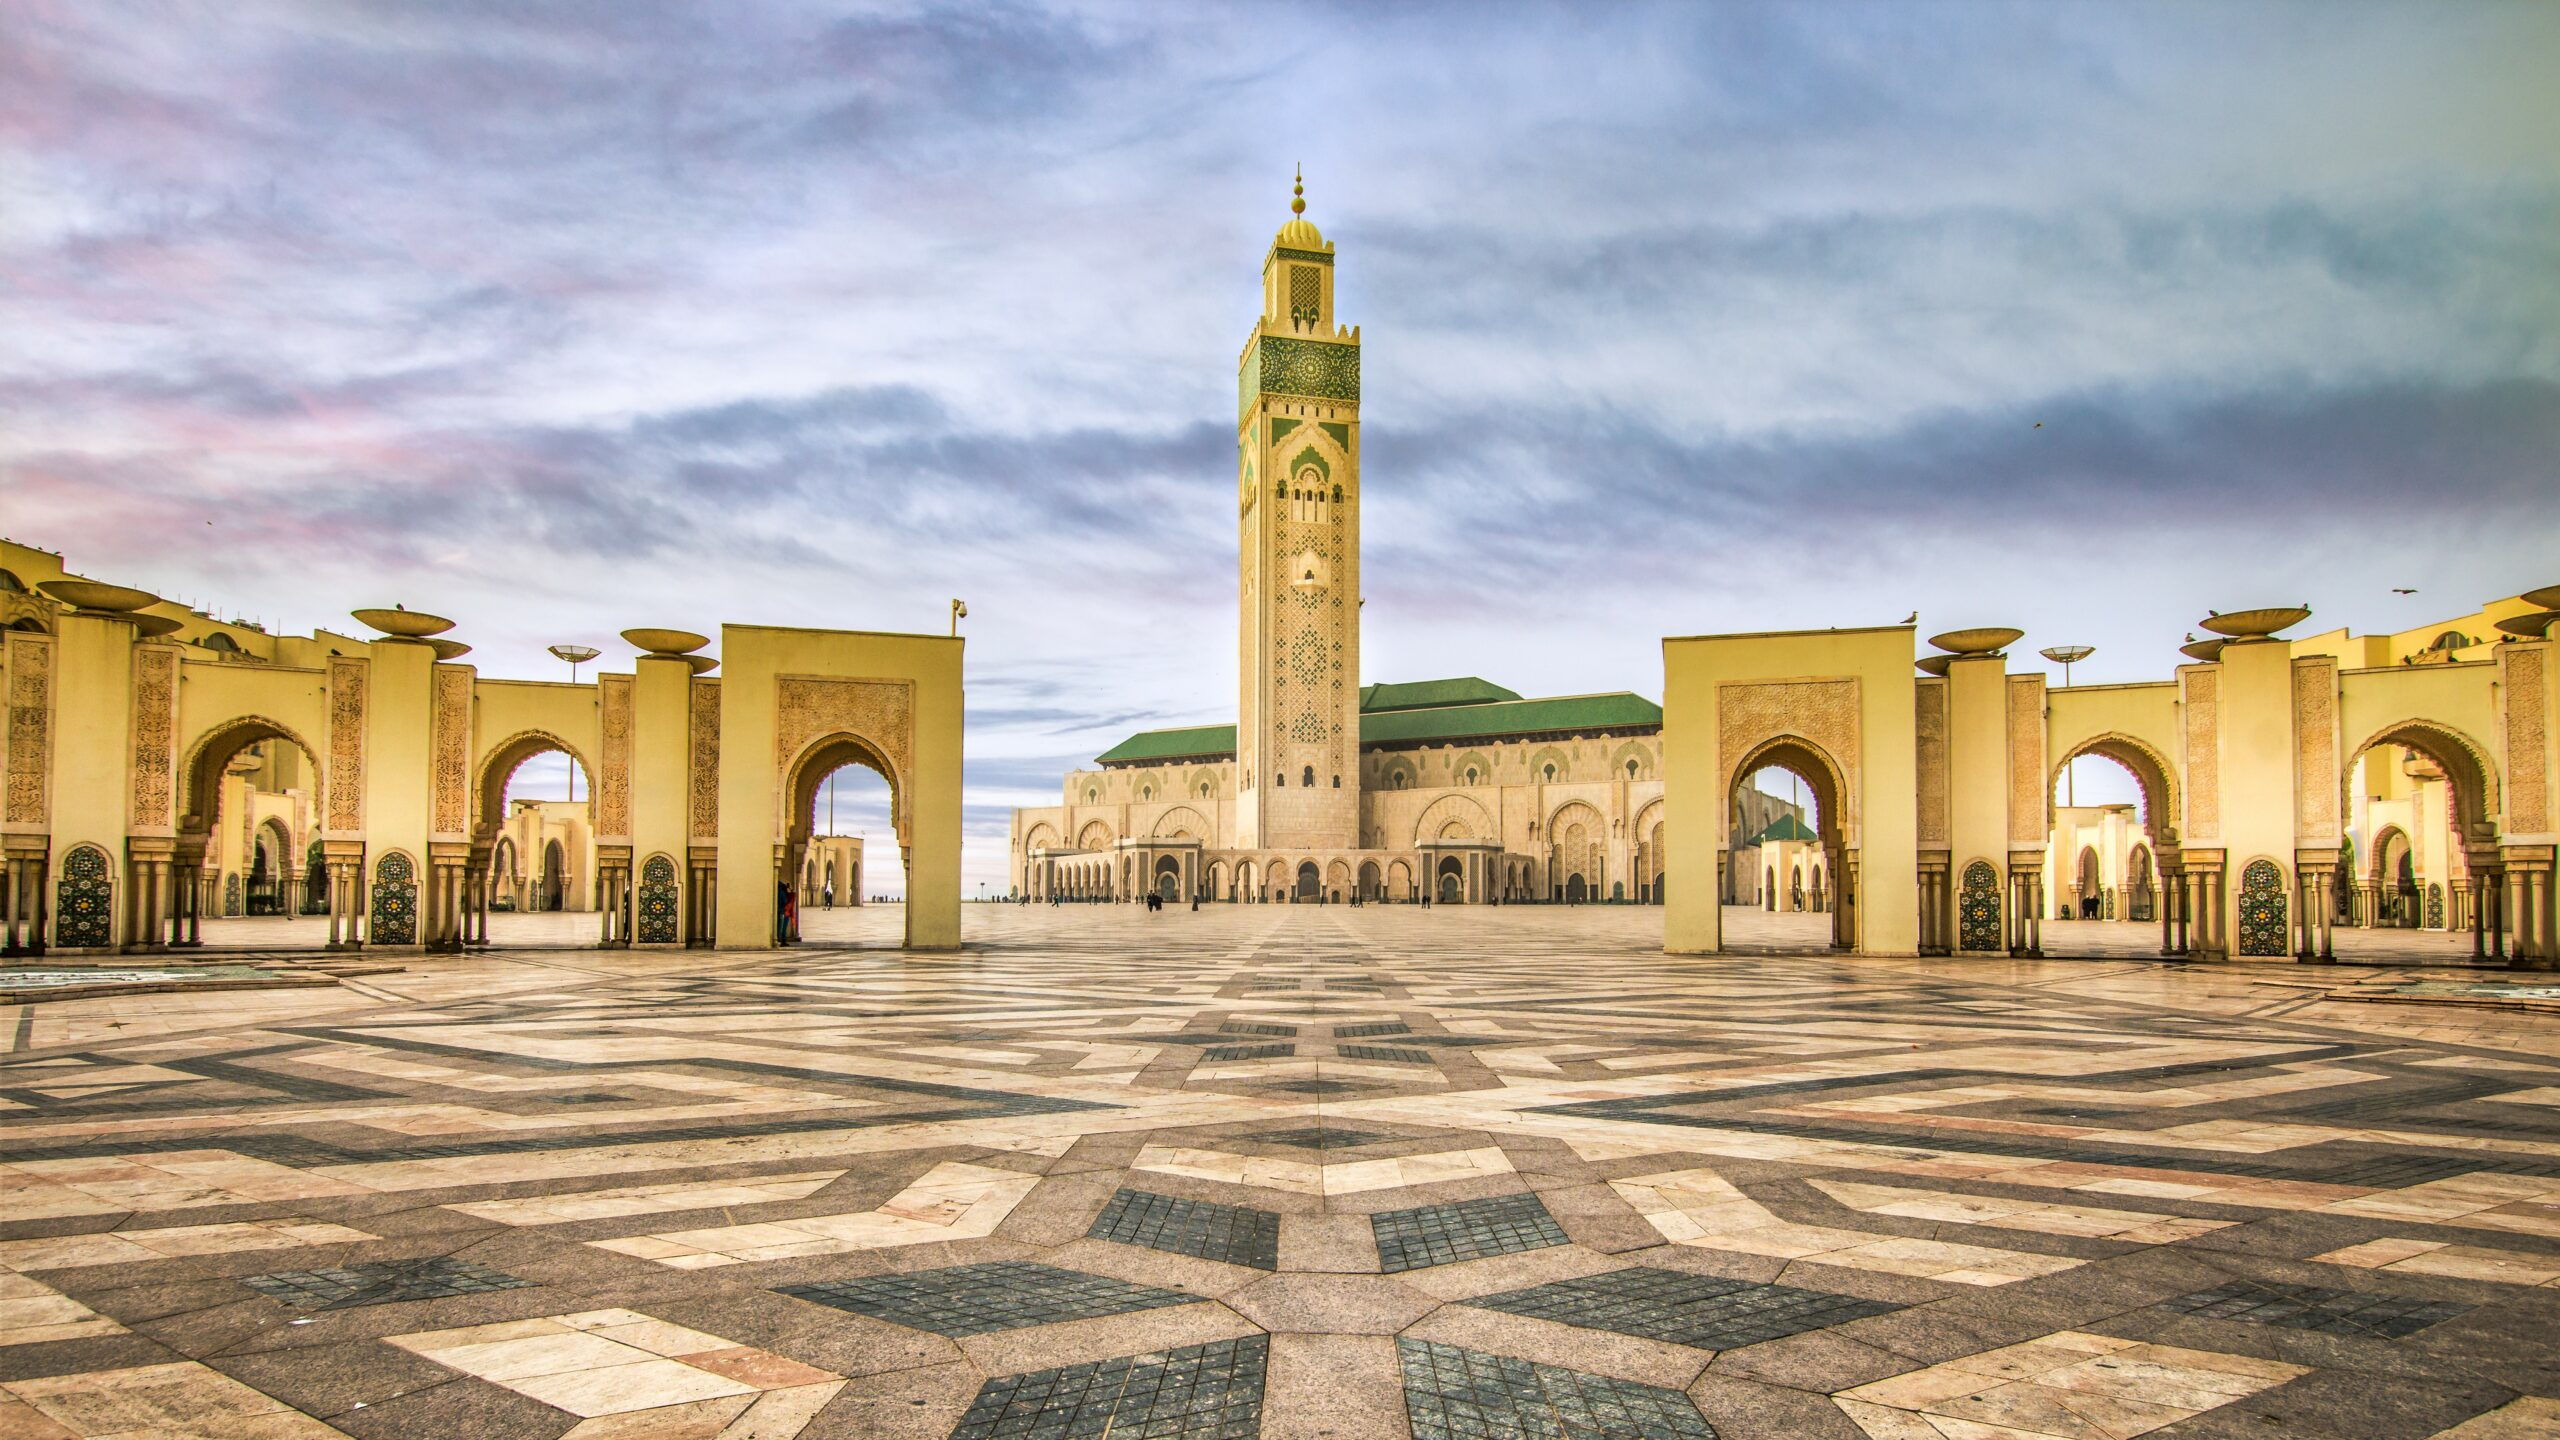 The Atlas Logistic Network is linking Casablanca, Morocco 1